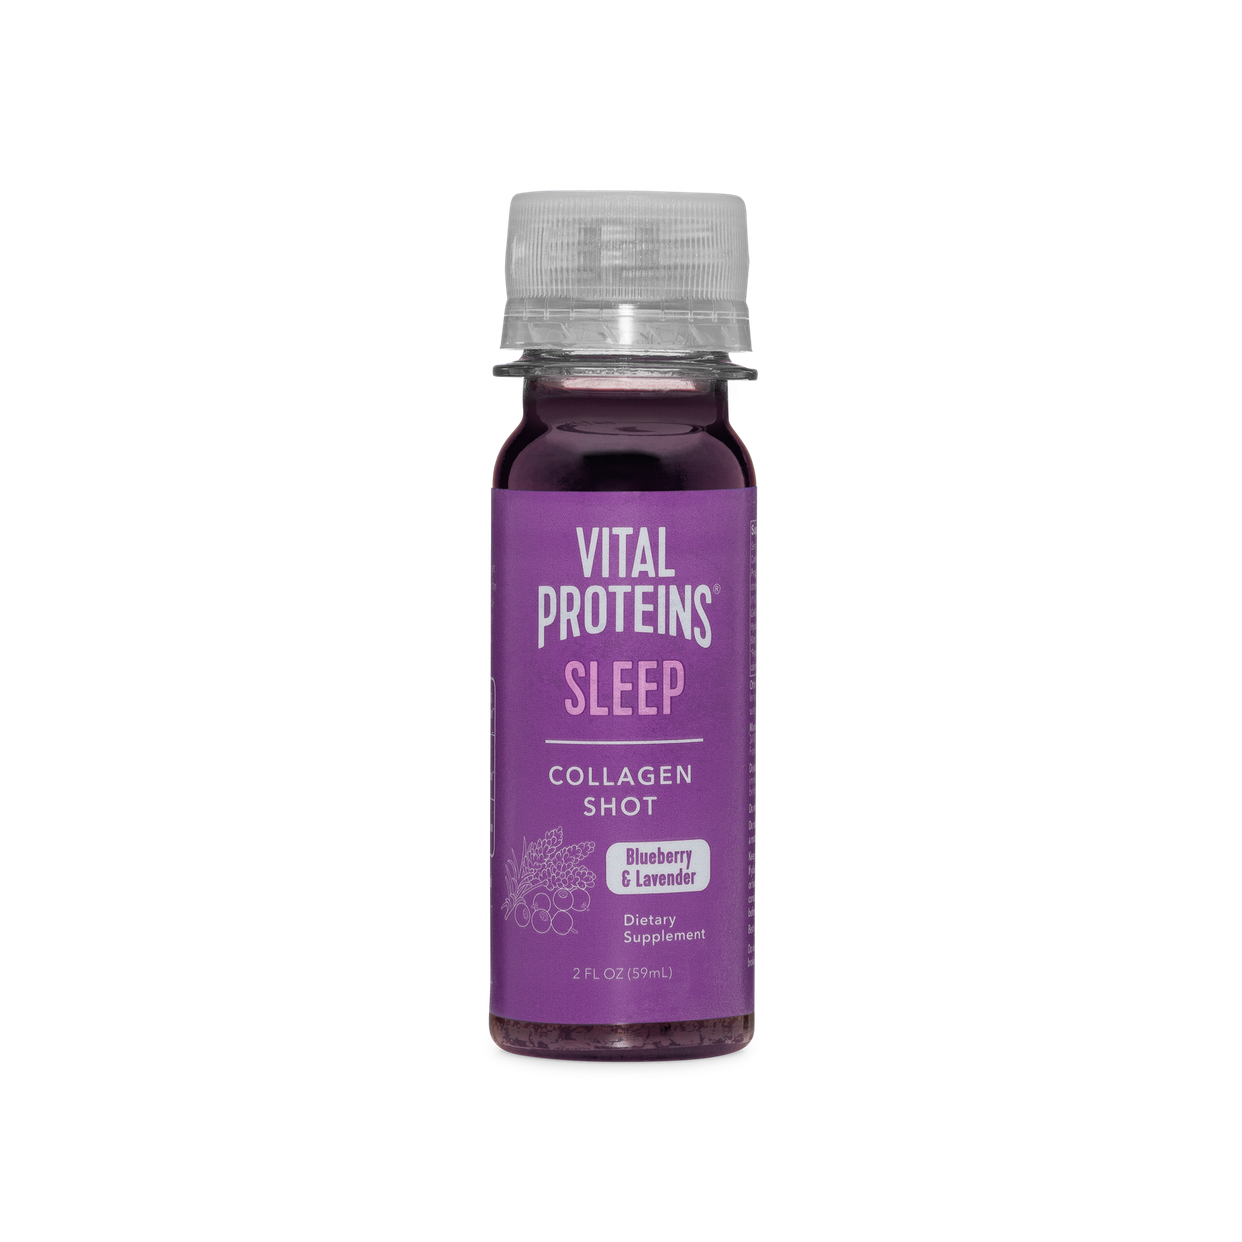 vital proteins collagen shot - sleep